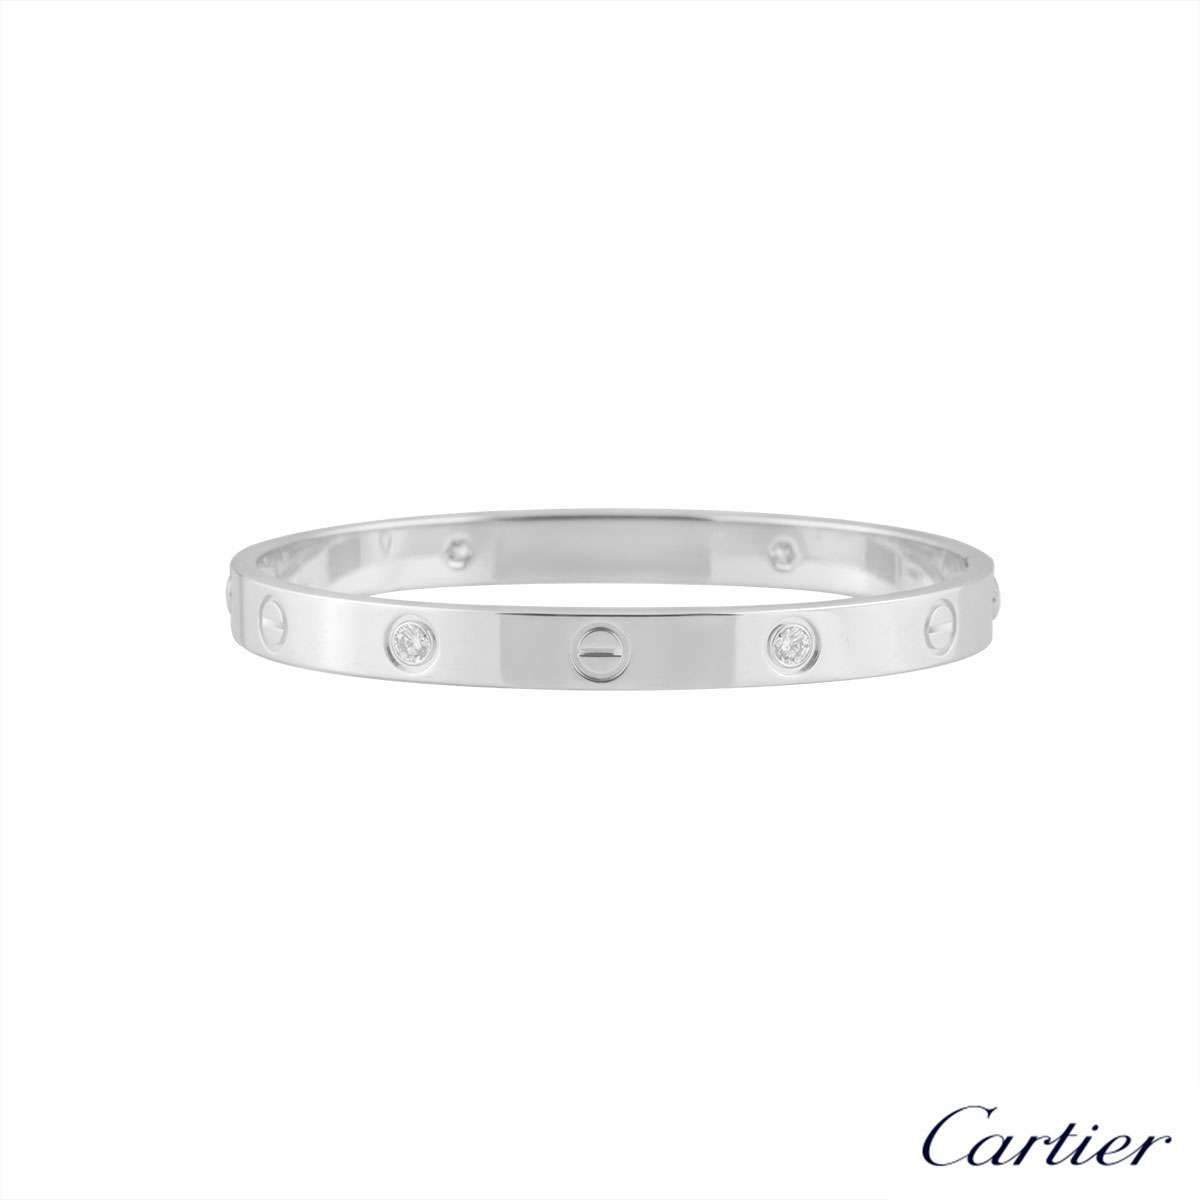 Cartier White Gold Half Diamond Love Bracelet Size 18 B6035818